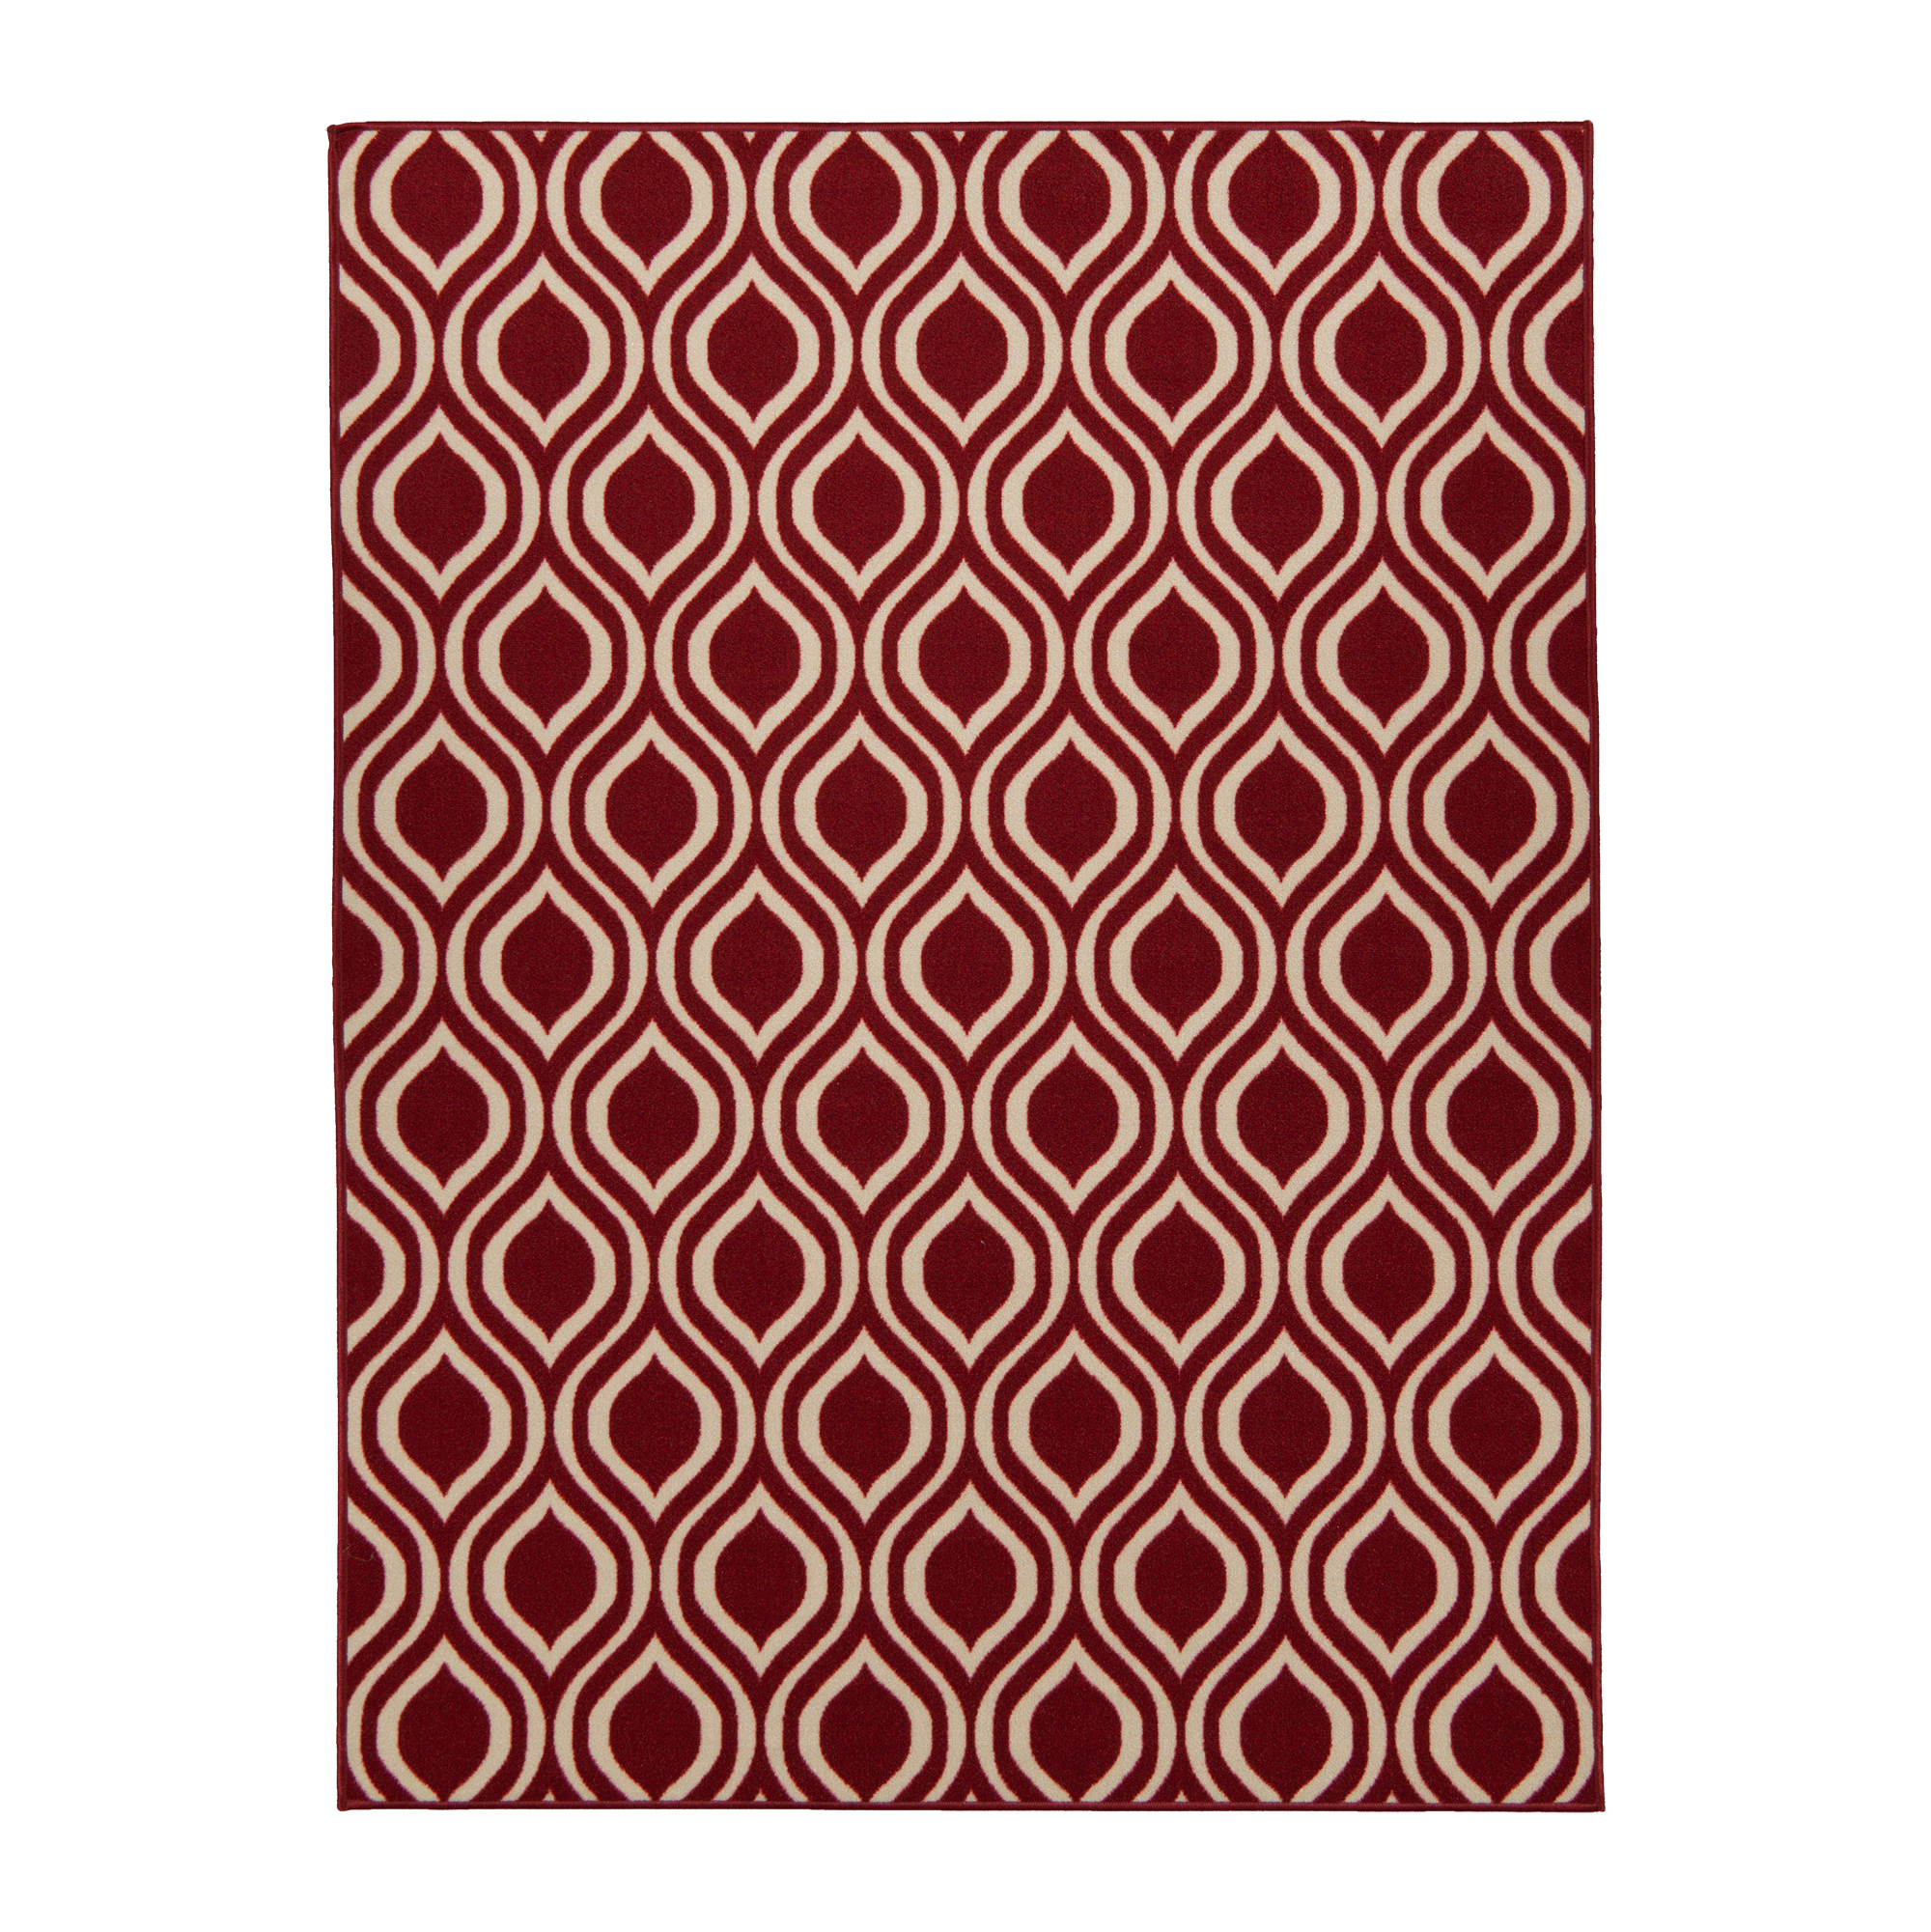 Berrnour Home Rose Collection Red Moroccan Trellis Design Area Rug With Non-Skid (Non-Slip) Rubber Backing